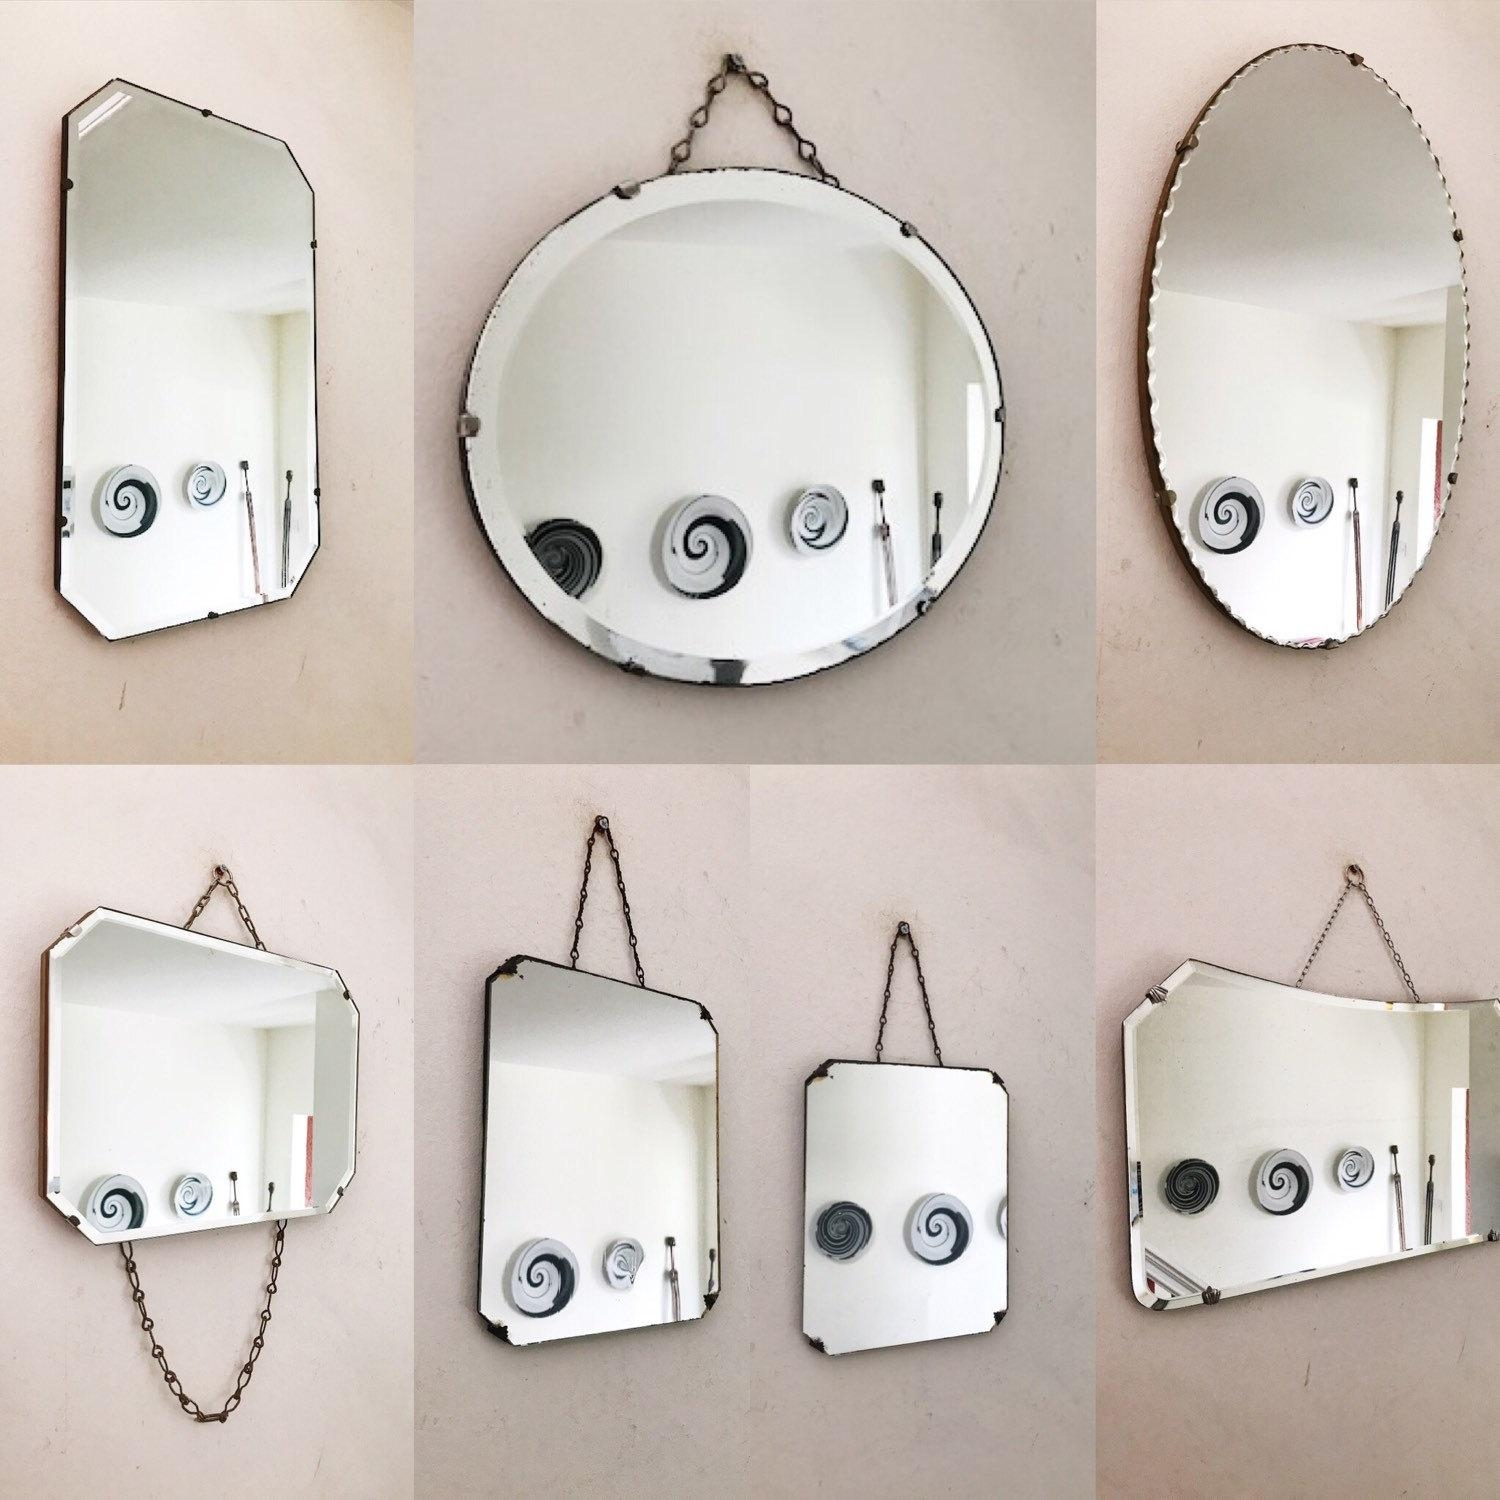 Vintage Art Deco Frameless Mirror/frameless Vintage 1930S Throughout Art Deco Frameless Mirror (Image 18 of 20)